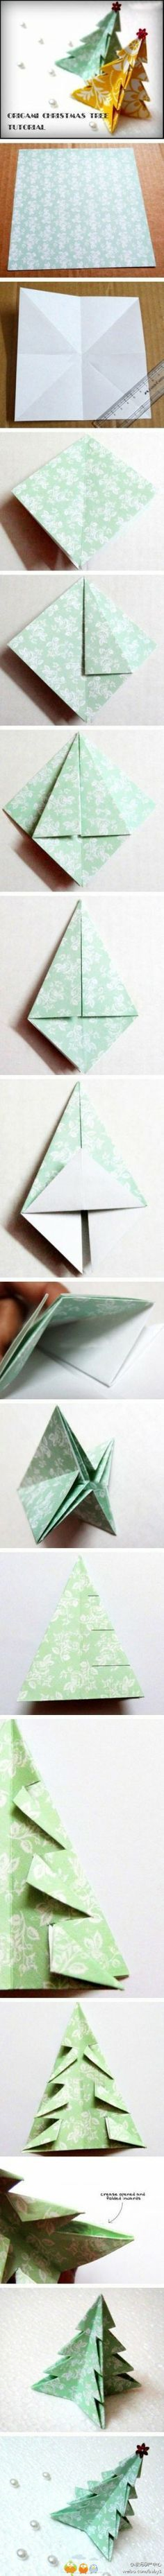 Origami paper art # Liangtu hands folded origami Christmas tree tutorial # friends ~ ~ ~ (from a few minutes . Origami Christmas Tree, Noel Christmas, Winter Christmas, Christmas Ornaments, Origami Xmas, Xmas Trees, Unique Christmas Gifts, All Things Christmas, Christmas Projects